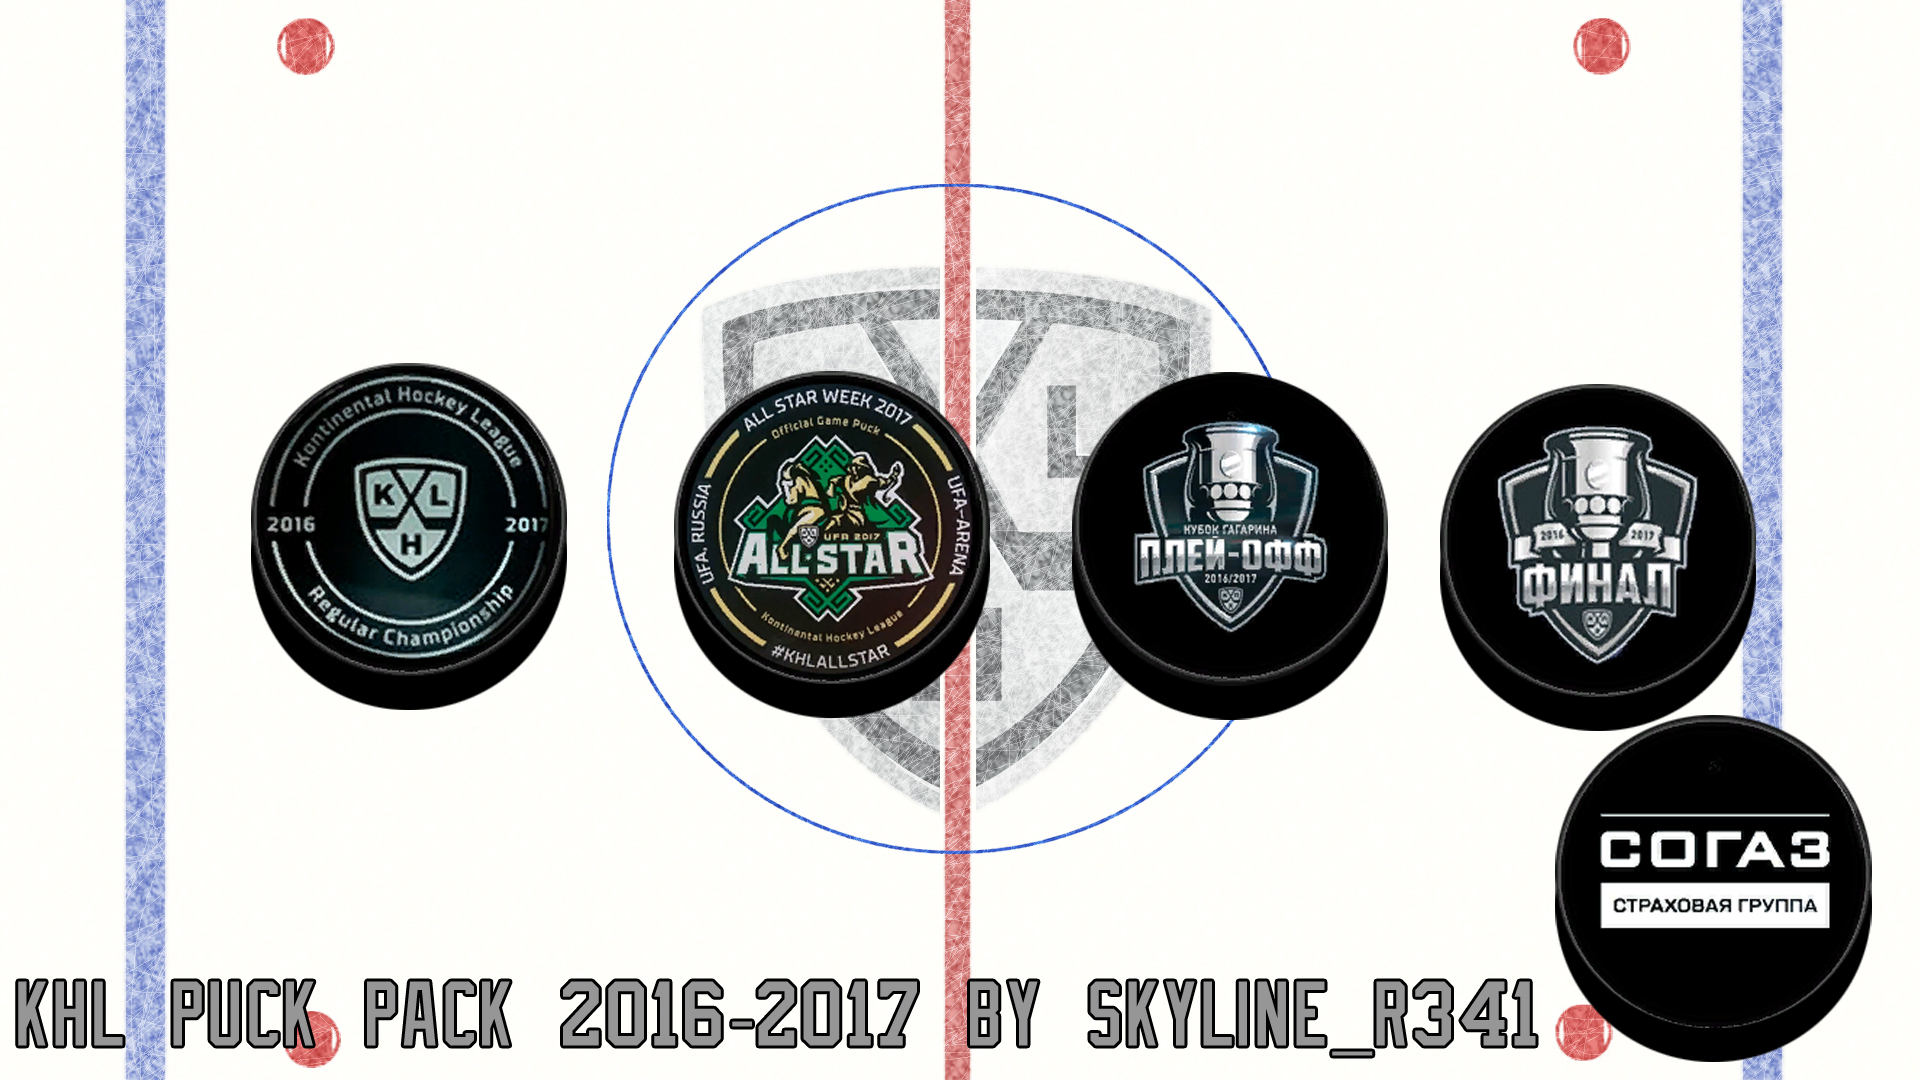 KHL Puck Pack 2016-2017